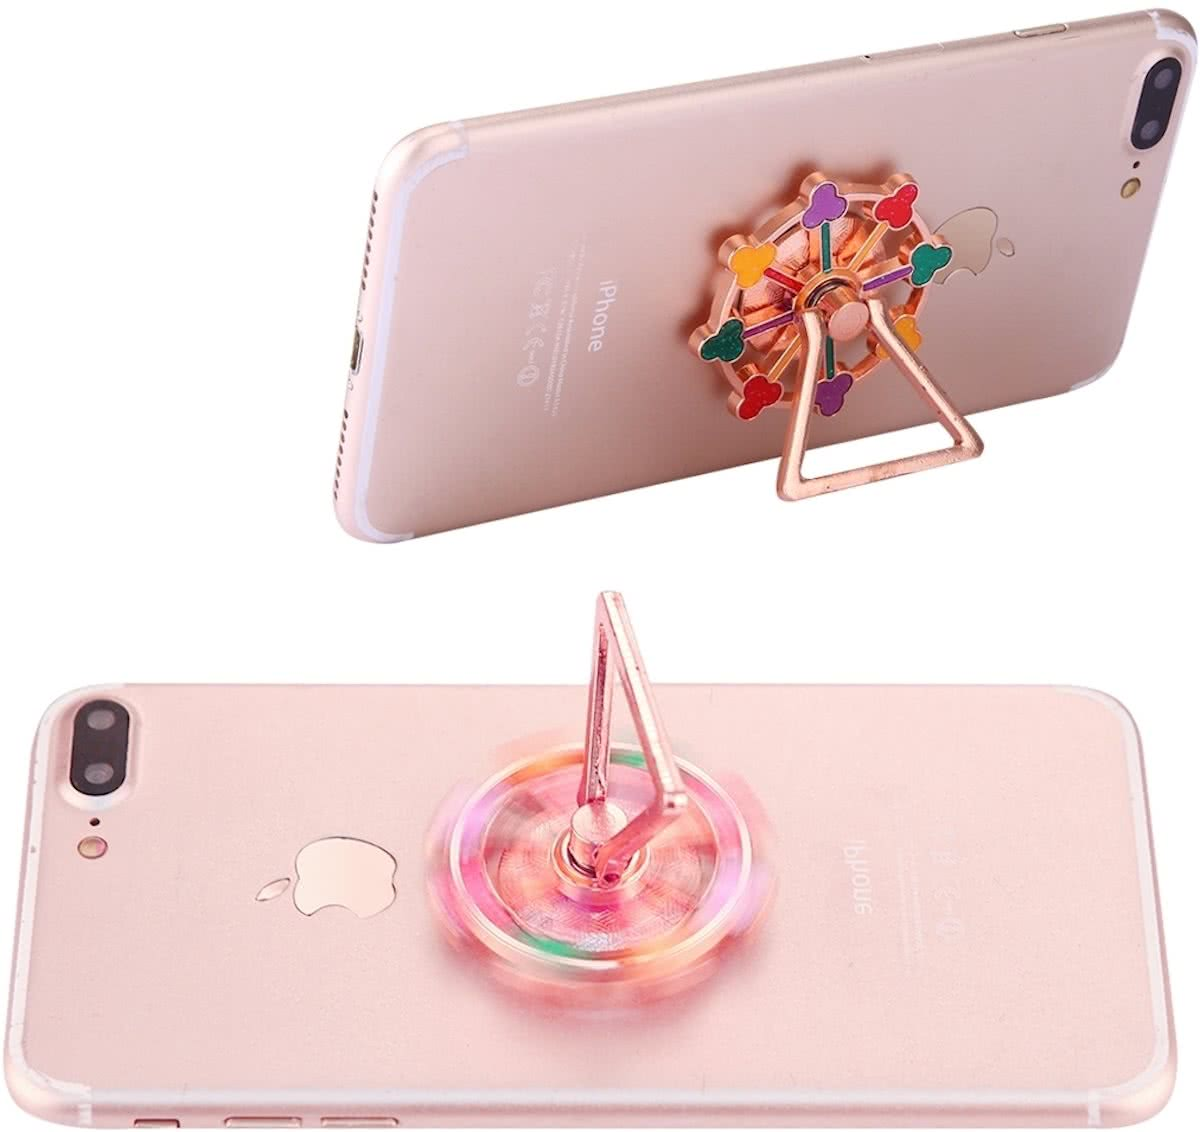 Flower Ferris Wheel Shape Phone Triangle houder   Spinner Toy Stress rooducer Anti-Anxiety Toy, About 0.2 Minutes Rotation Time